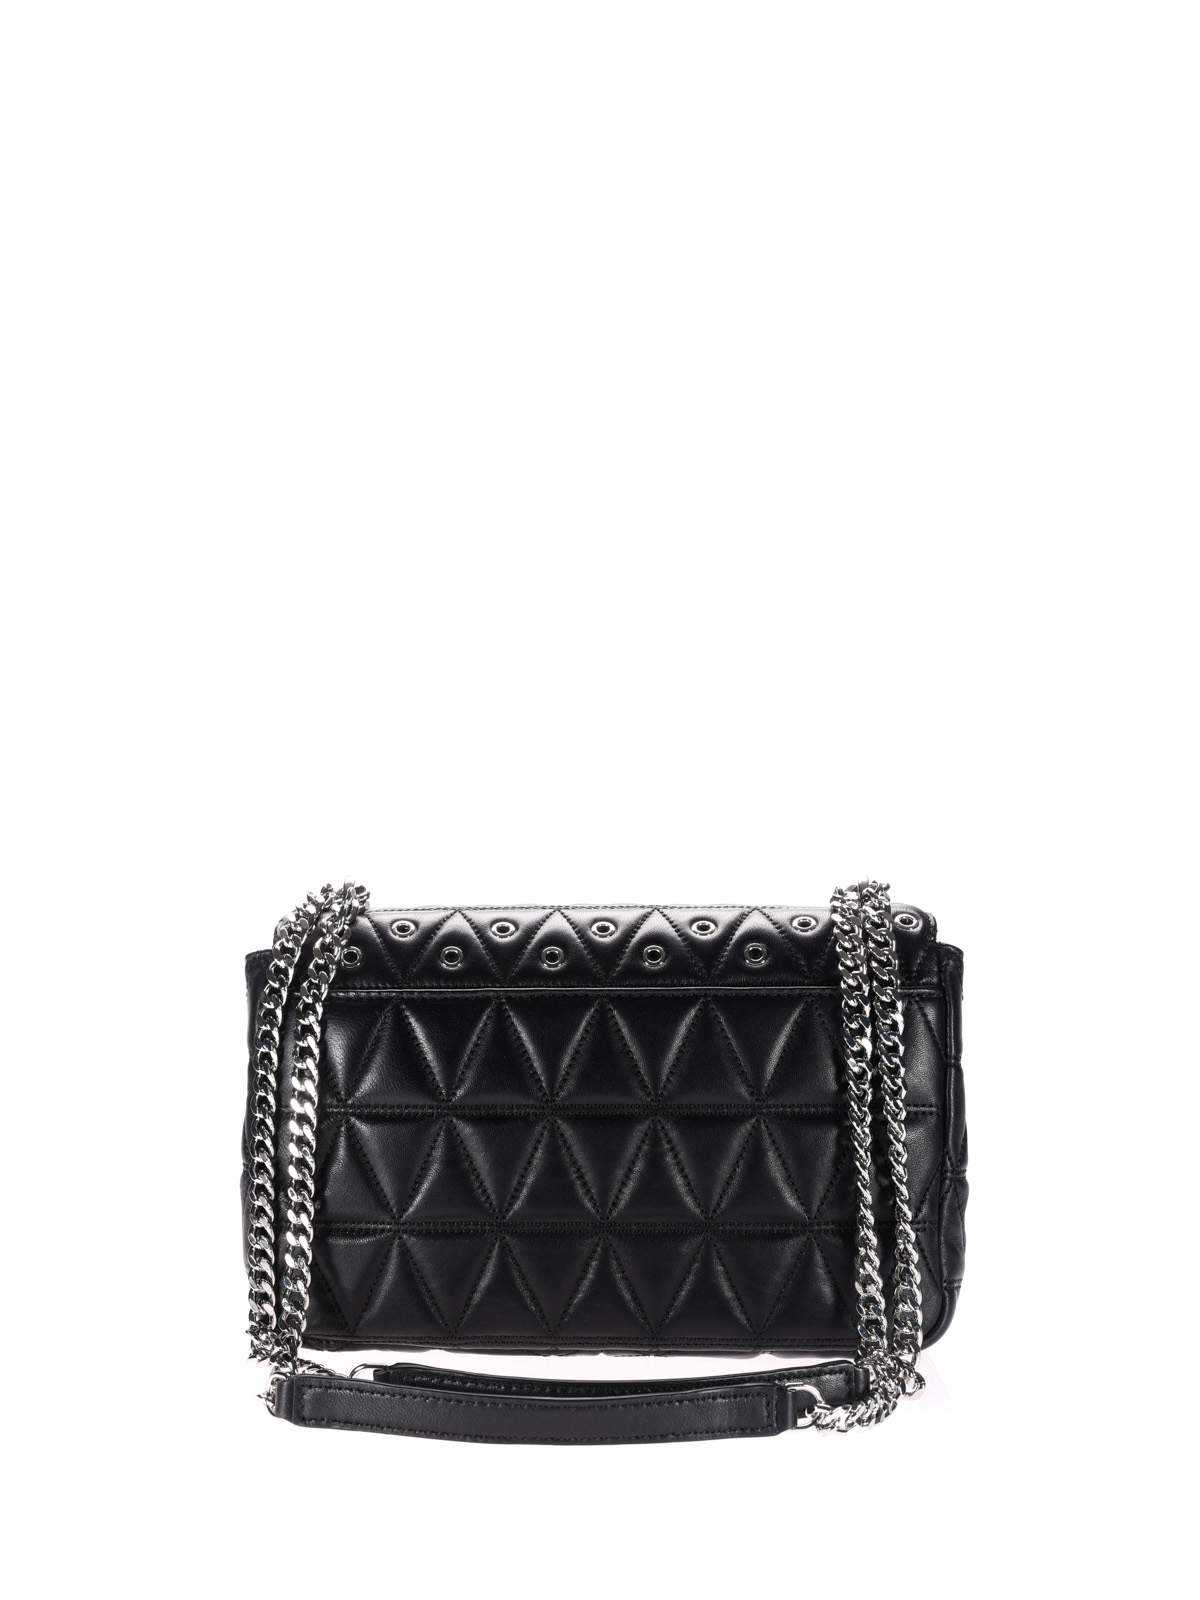 Michael Kors Sloane quilted bag with eyelets BZ9LH